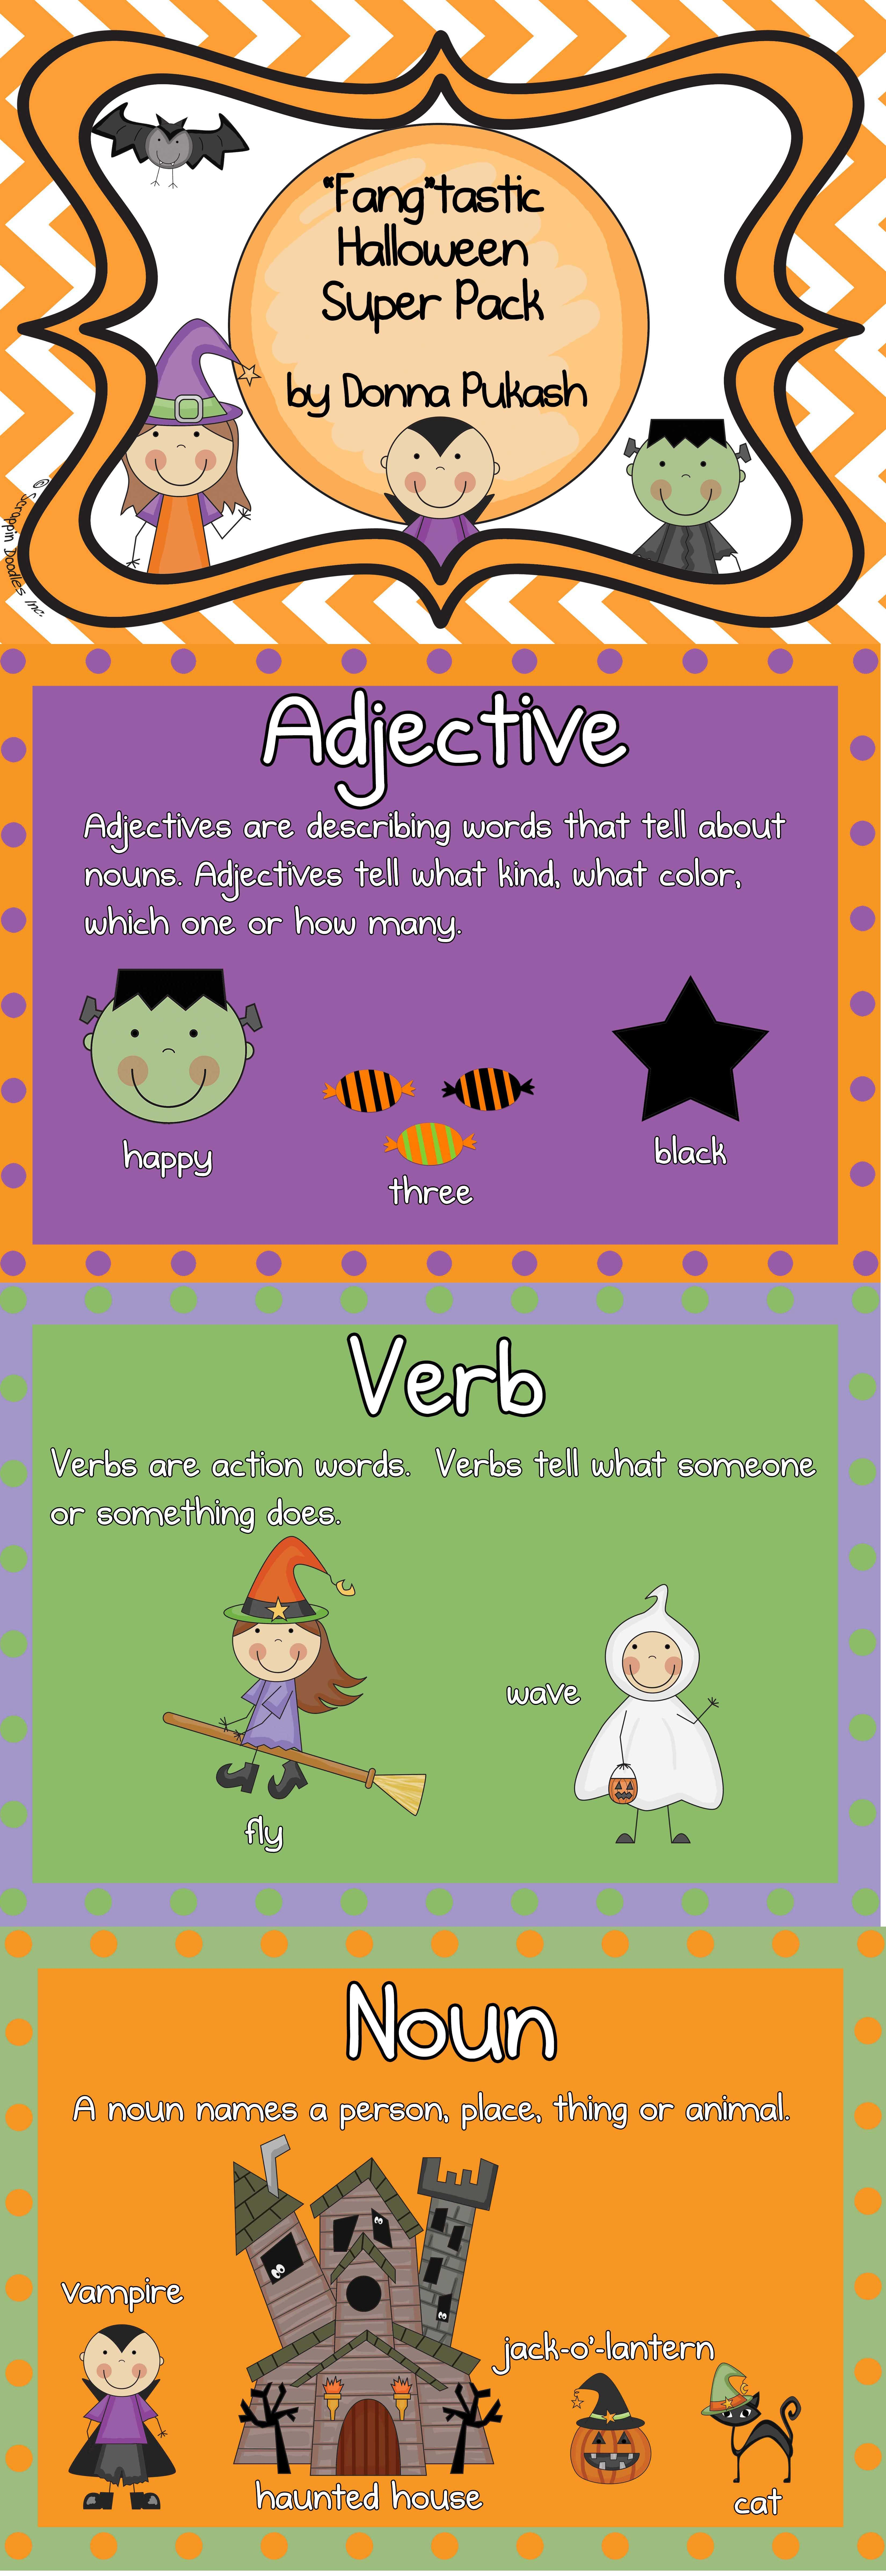 Fang Tastic Halloween Super Pack Reading Writing